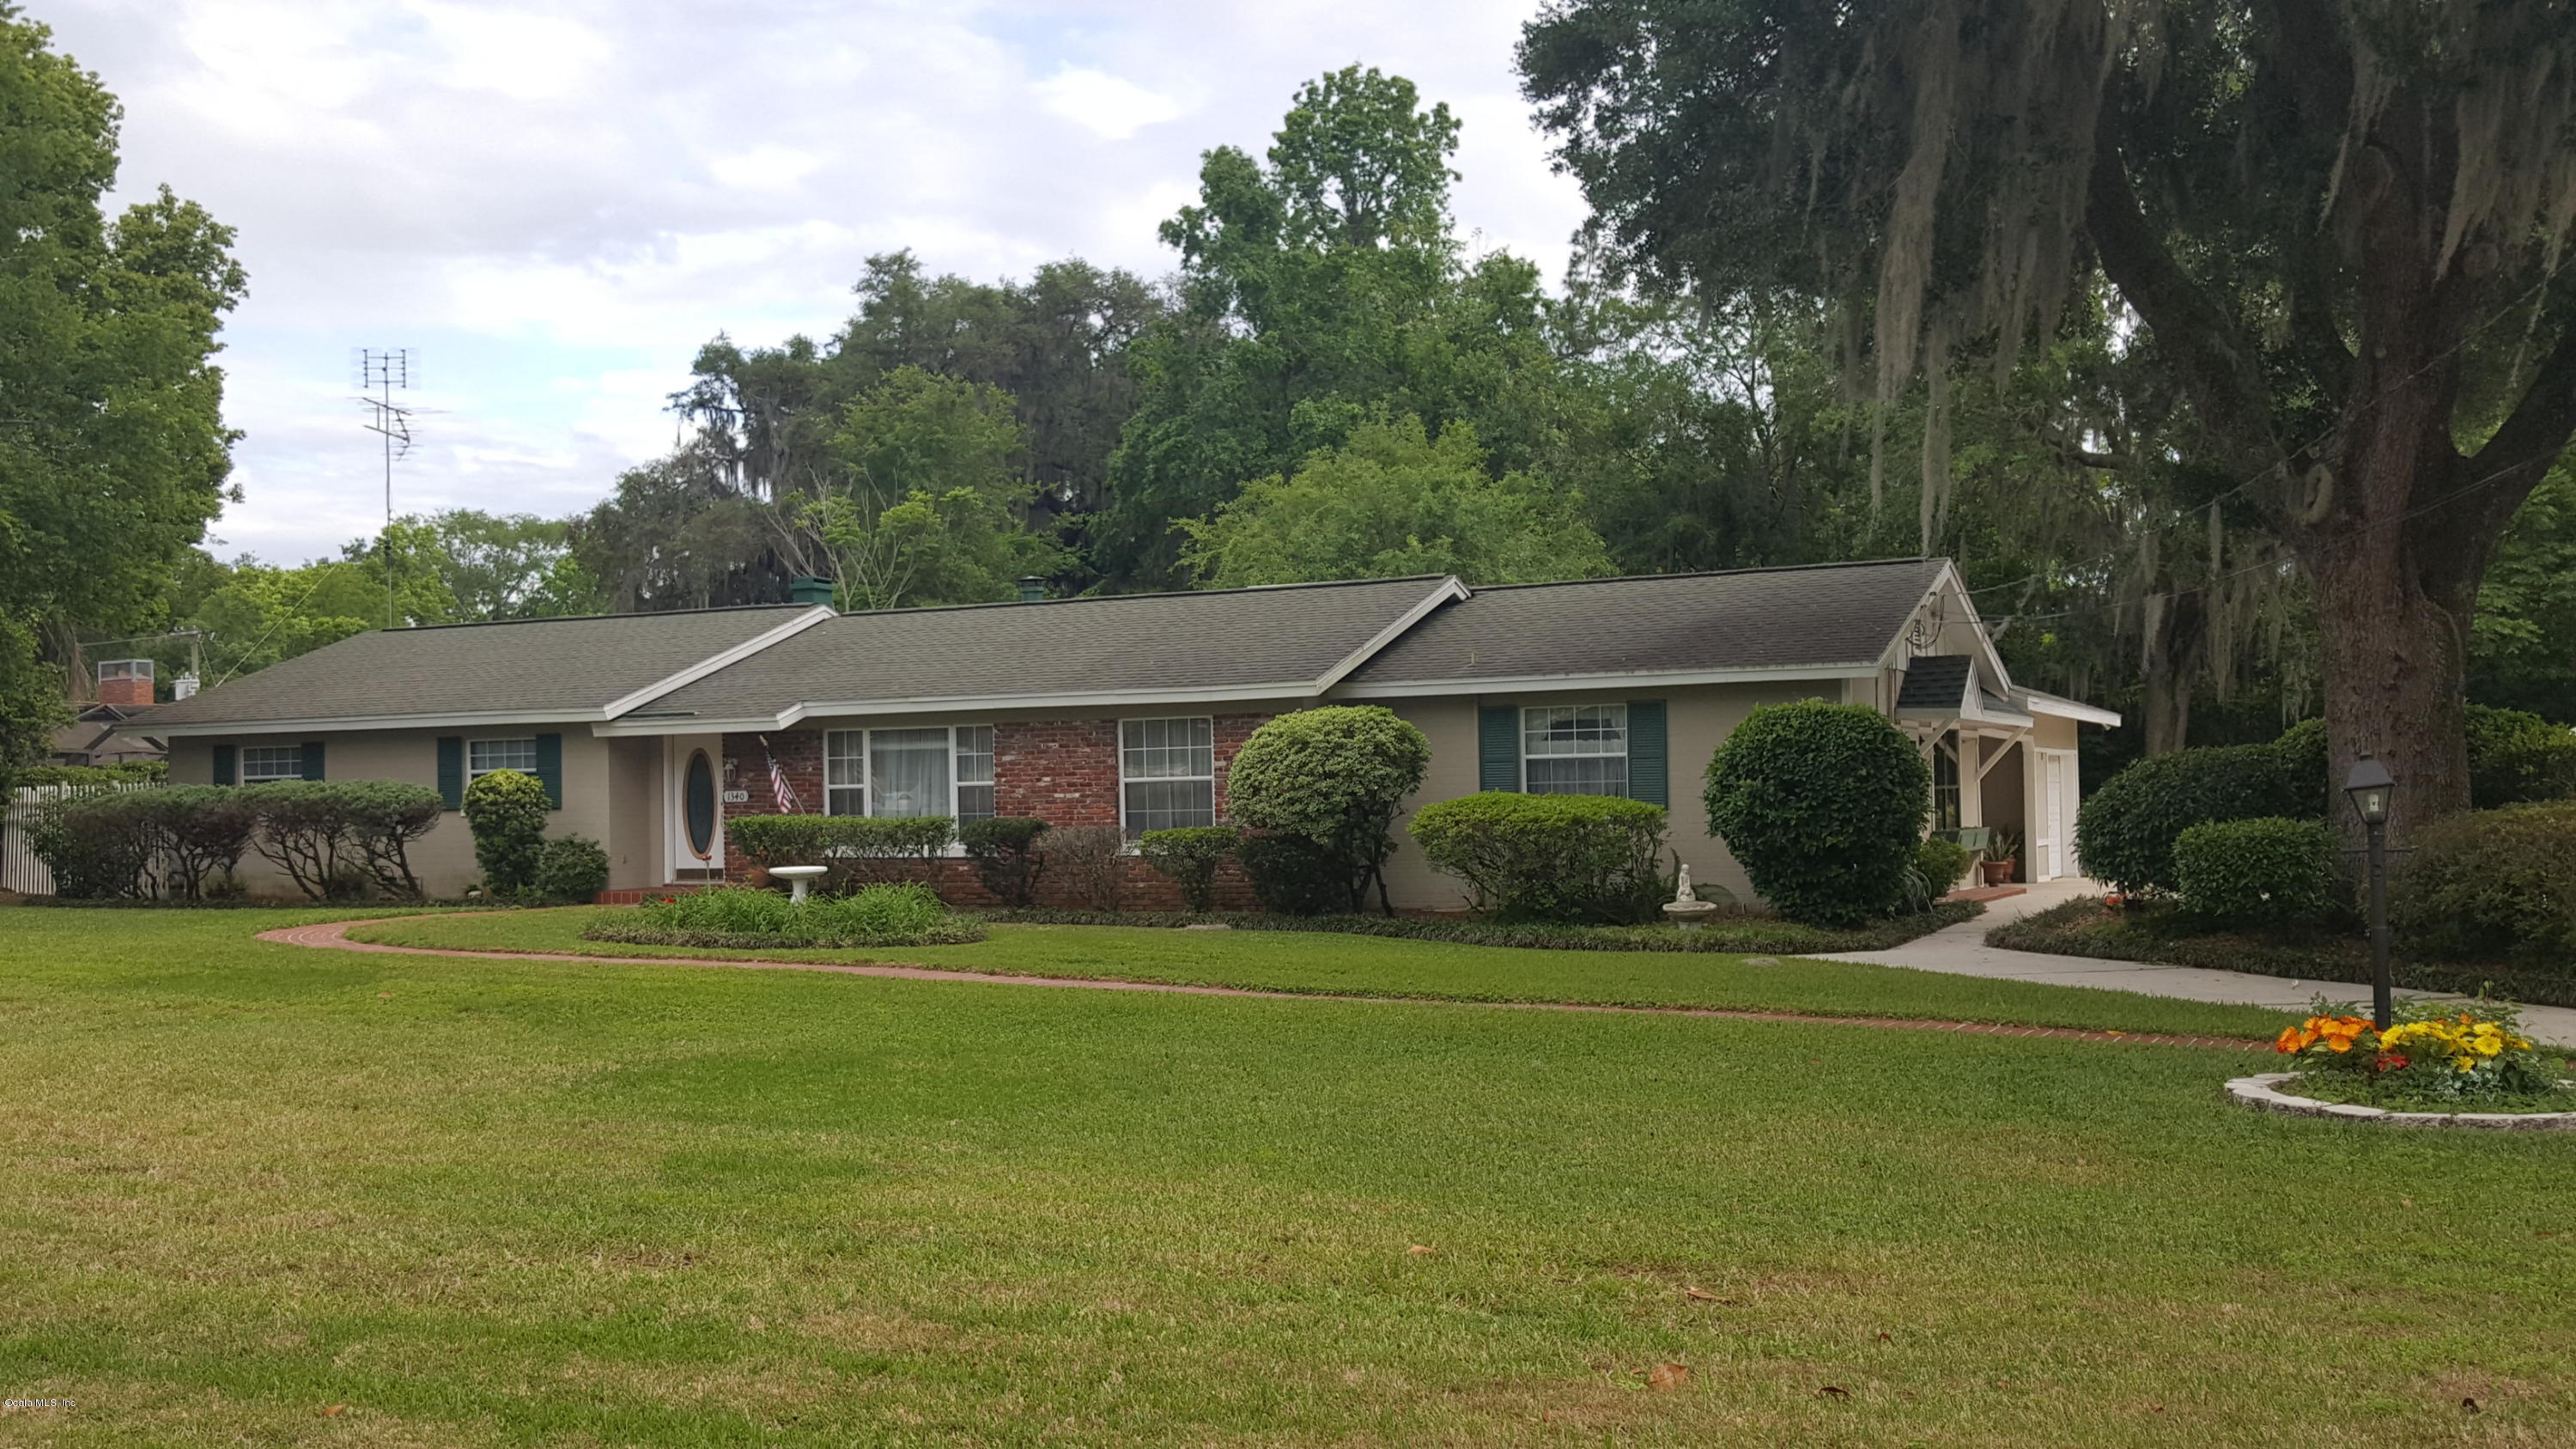 1340 SE 16TH STREET, OCALA, FL 34471